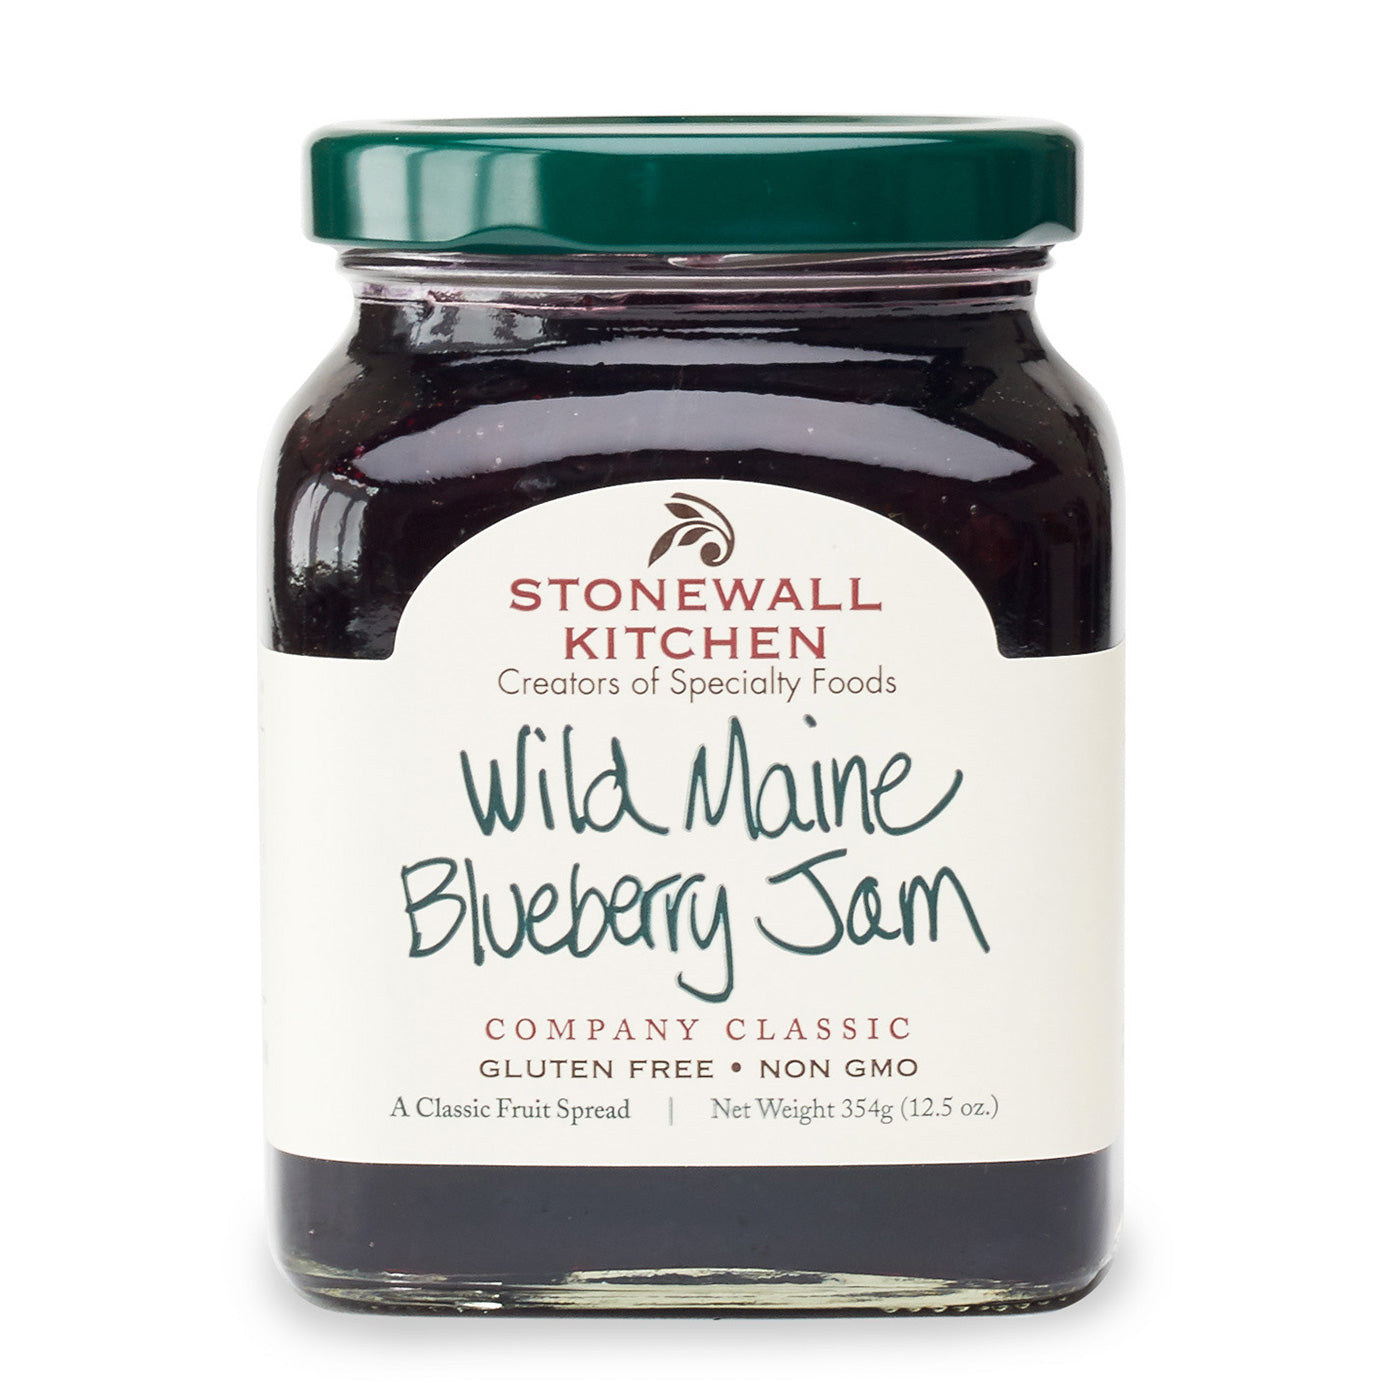 Stonewall Kitchen - Wild Maine Blueberry Jam